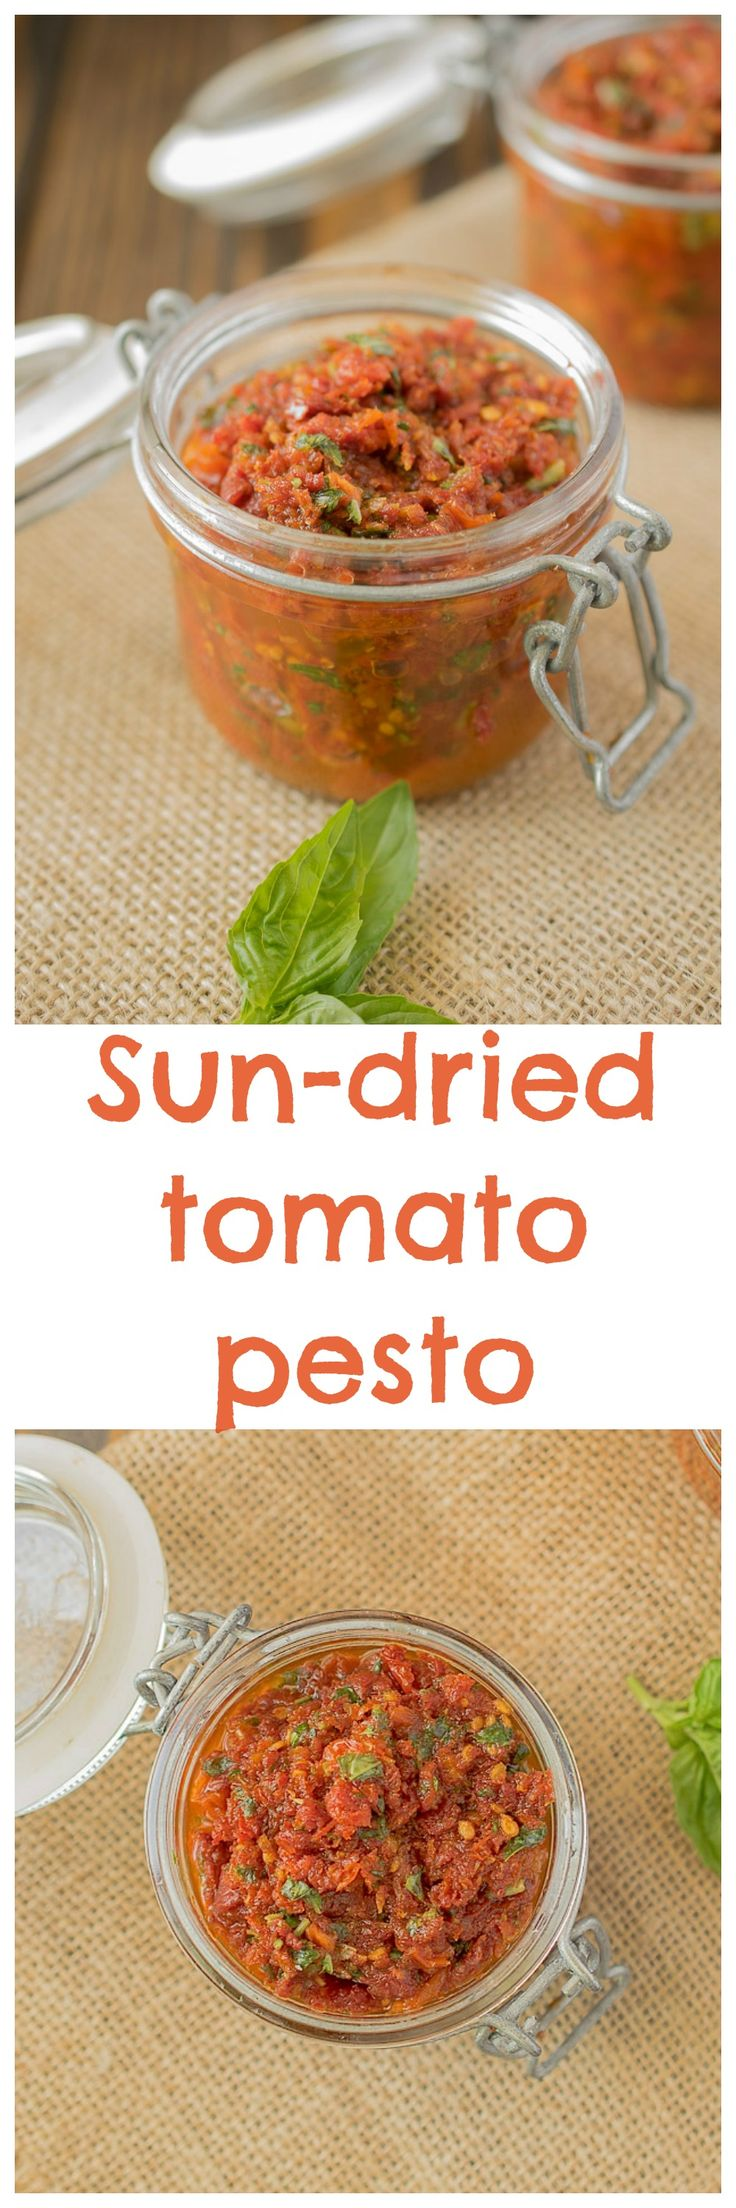 19 best images about Pesto on Pinterest   Kale, Cream ...